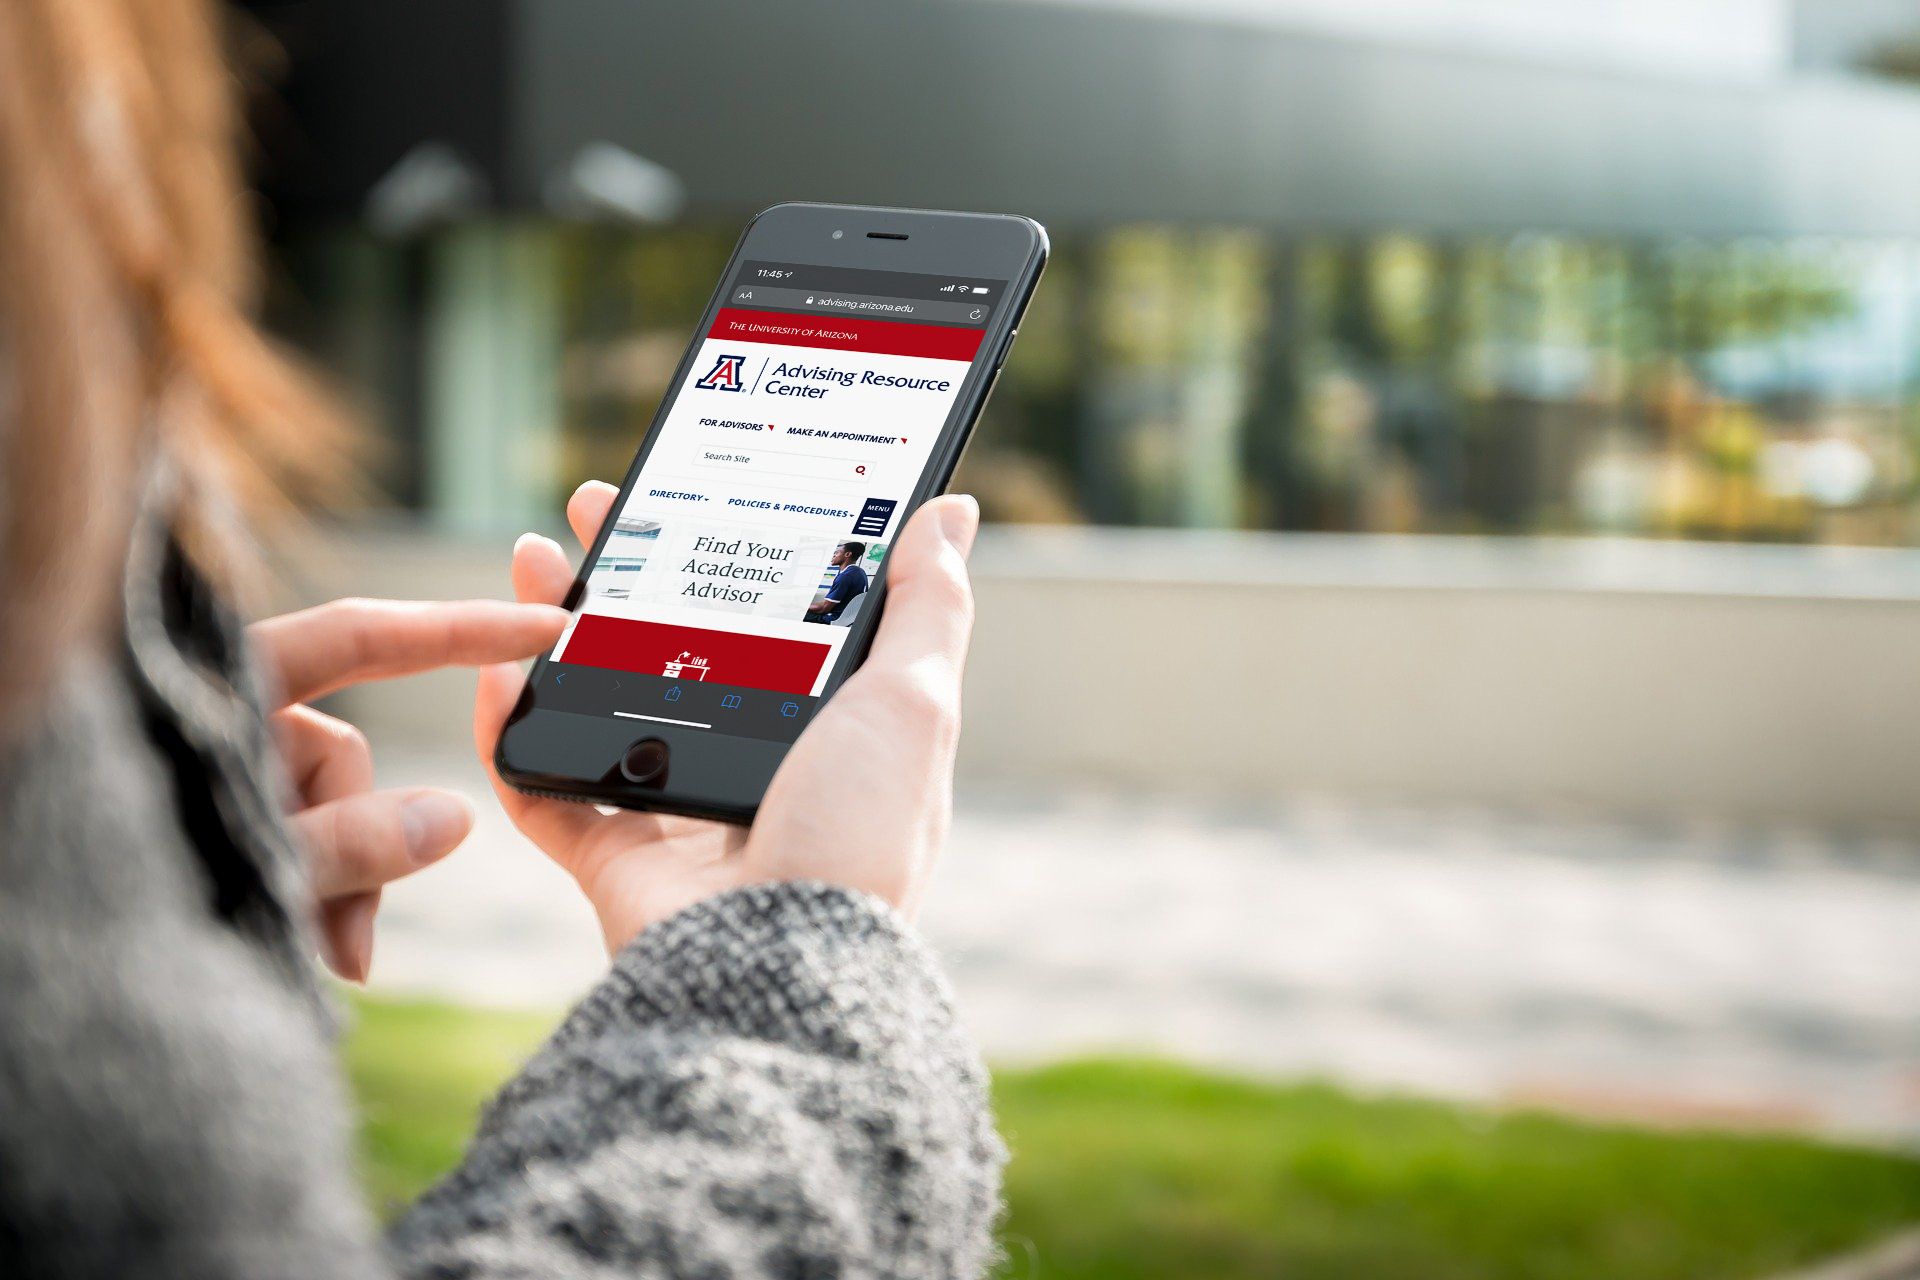 Woman holding phone which displays the Advising Resource Center website's home page